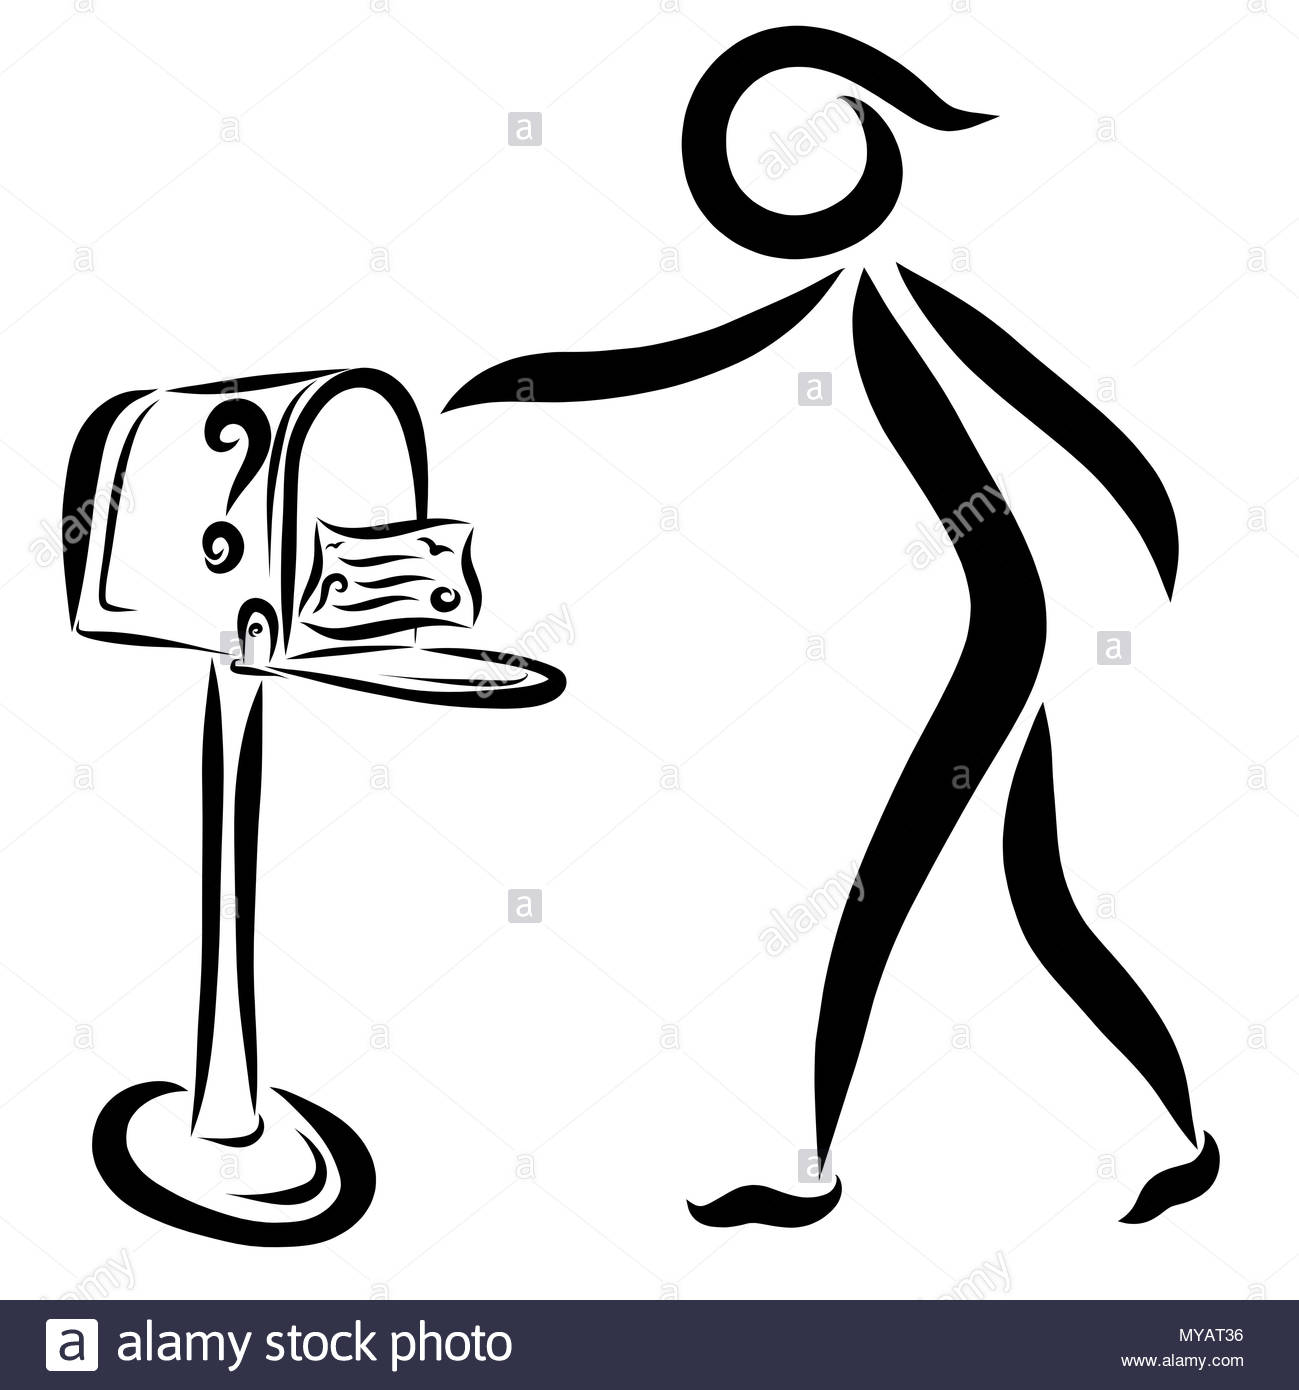 The person who received the letter, mail box - Stock Image